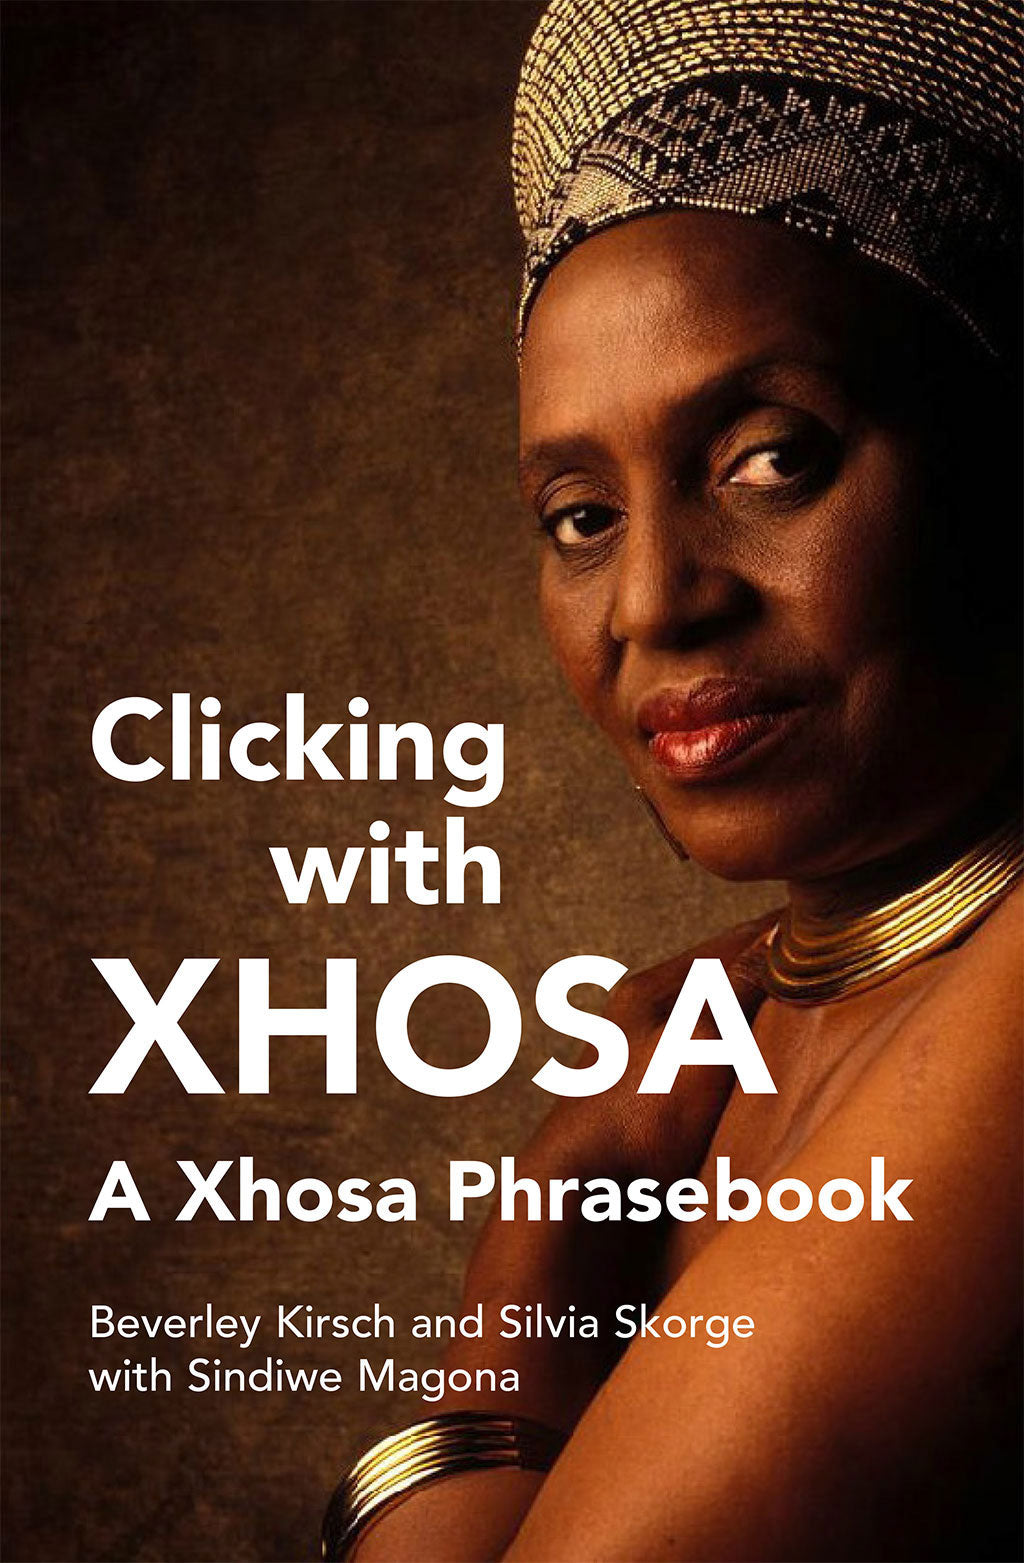 CLICKING WITH XHOSA: A Xhosa Phrasebook